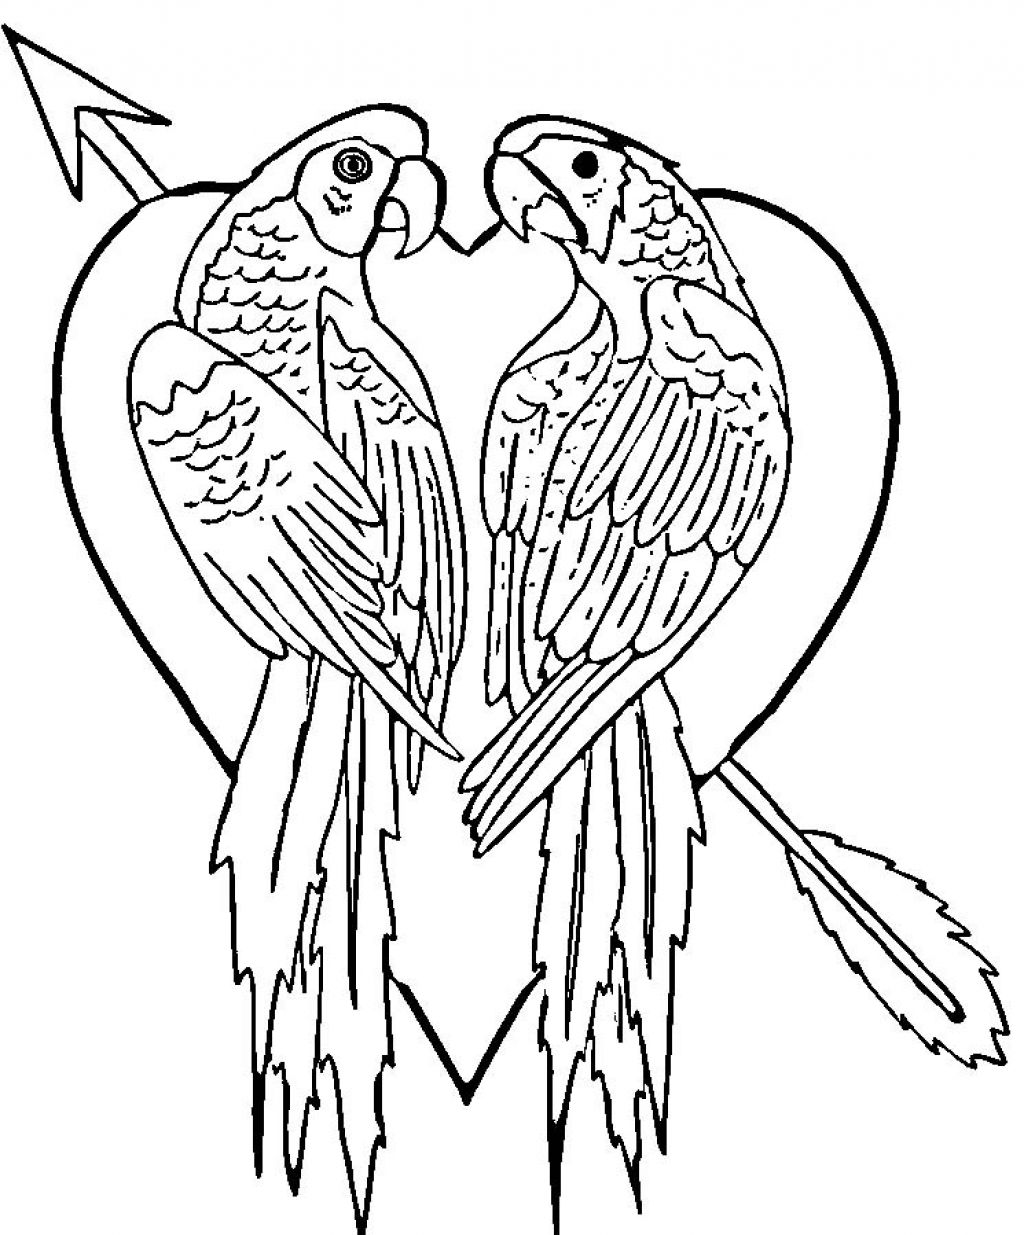 Free Printable Parrot Coloring Pages For Kids Coloring Pages To Print Free